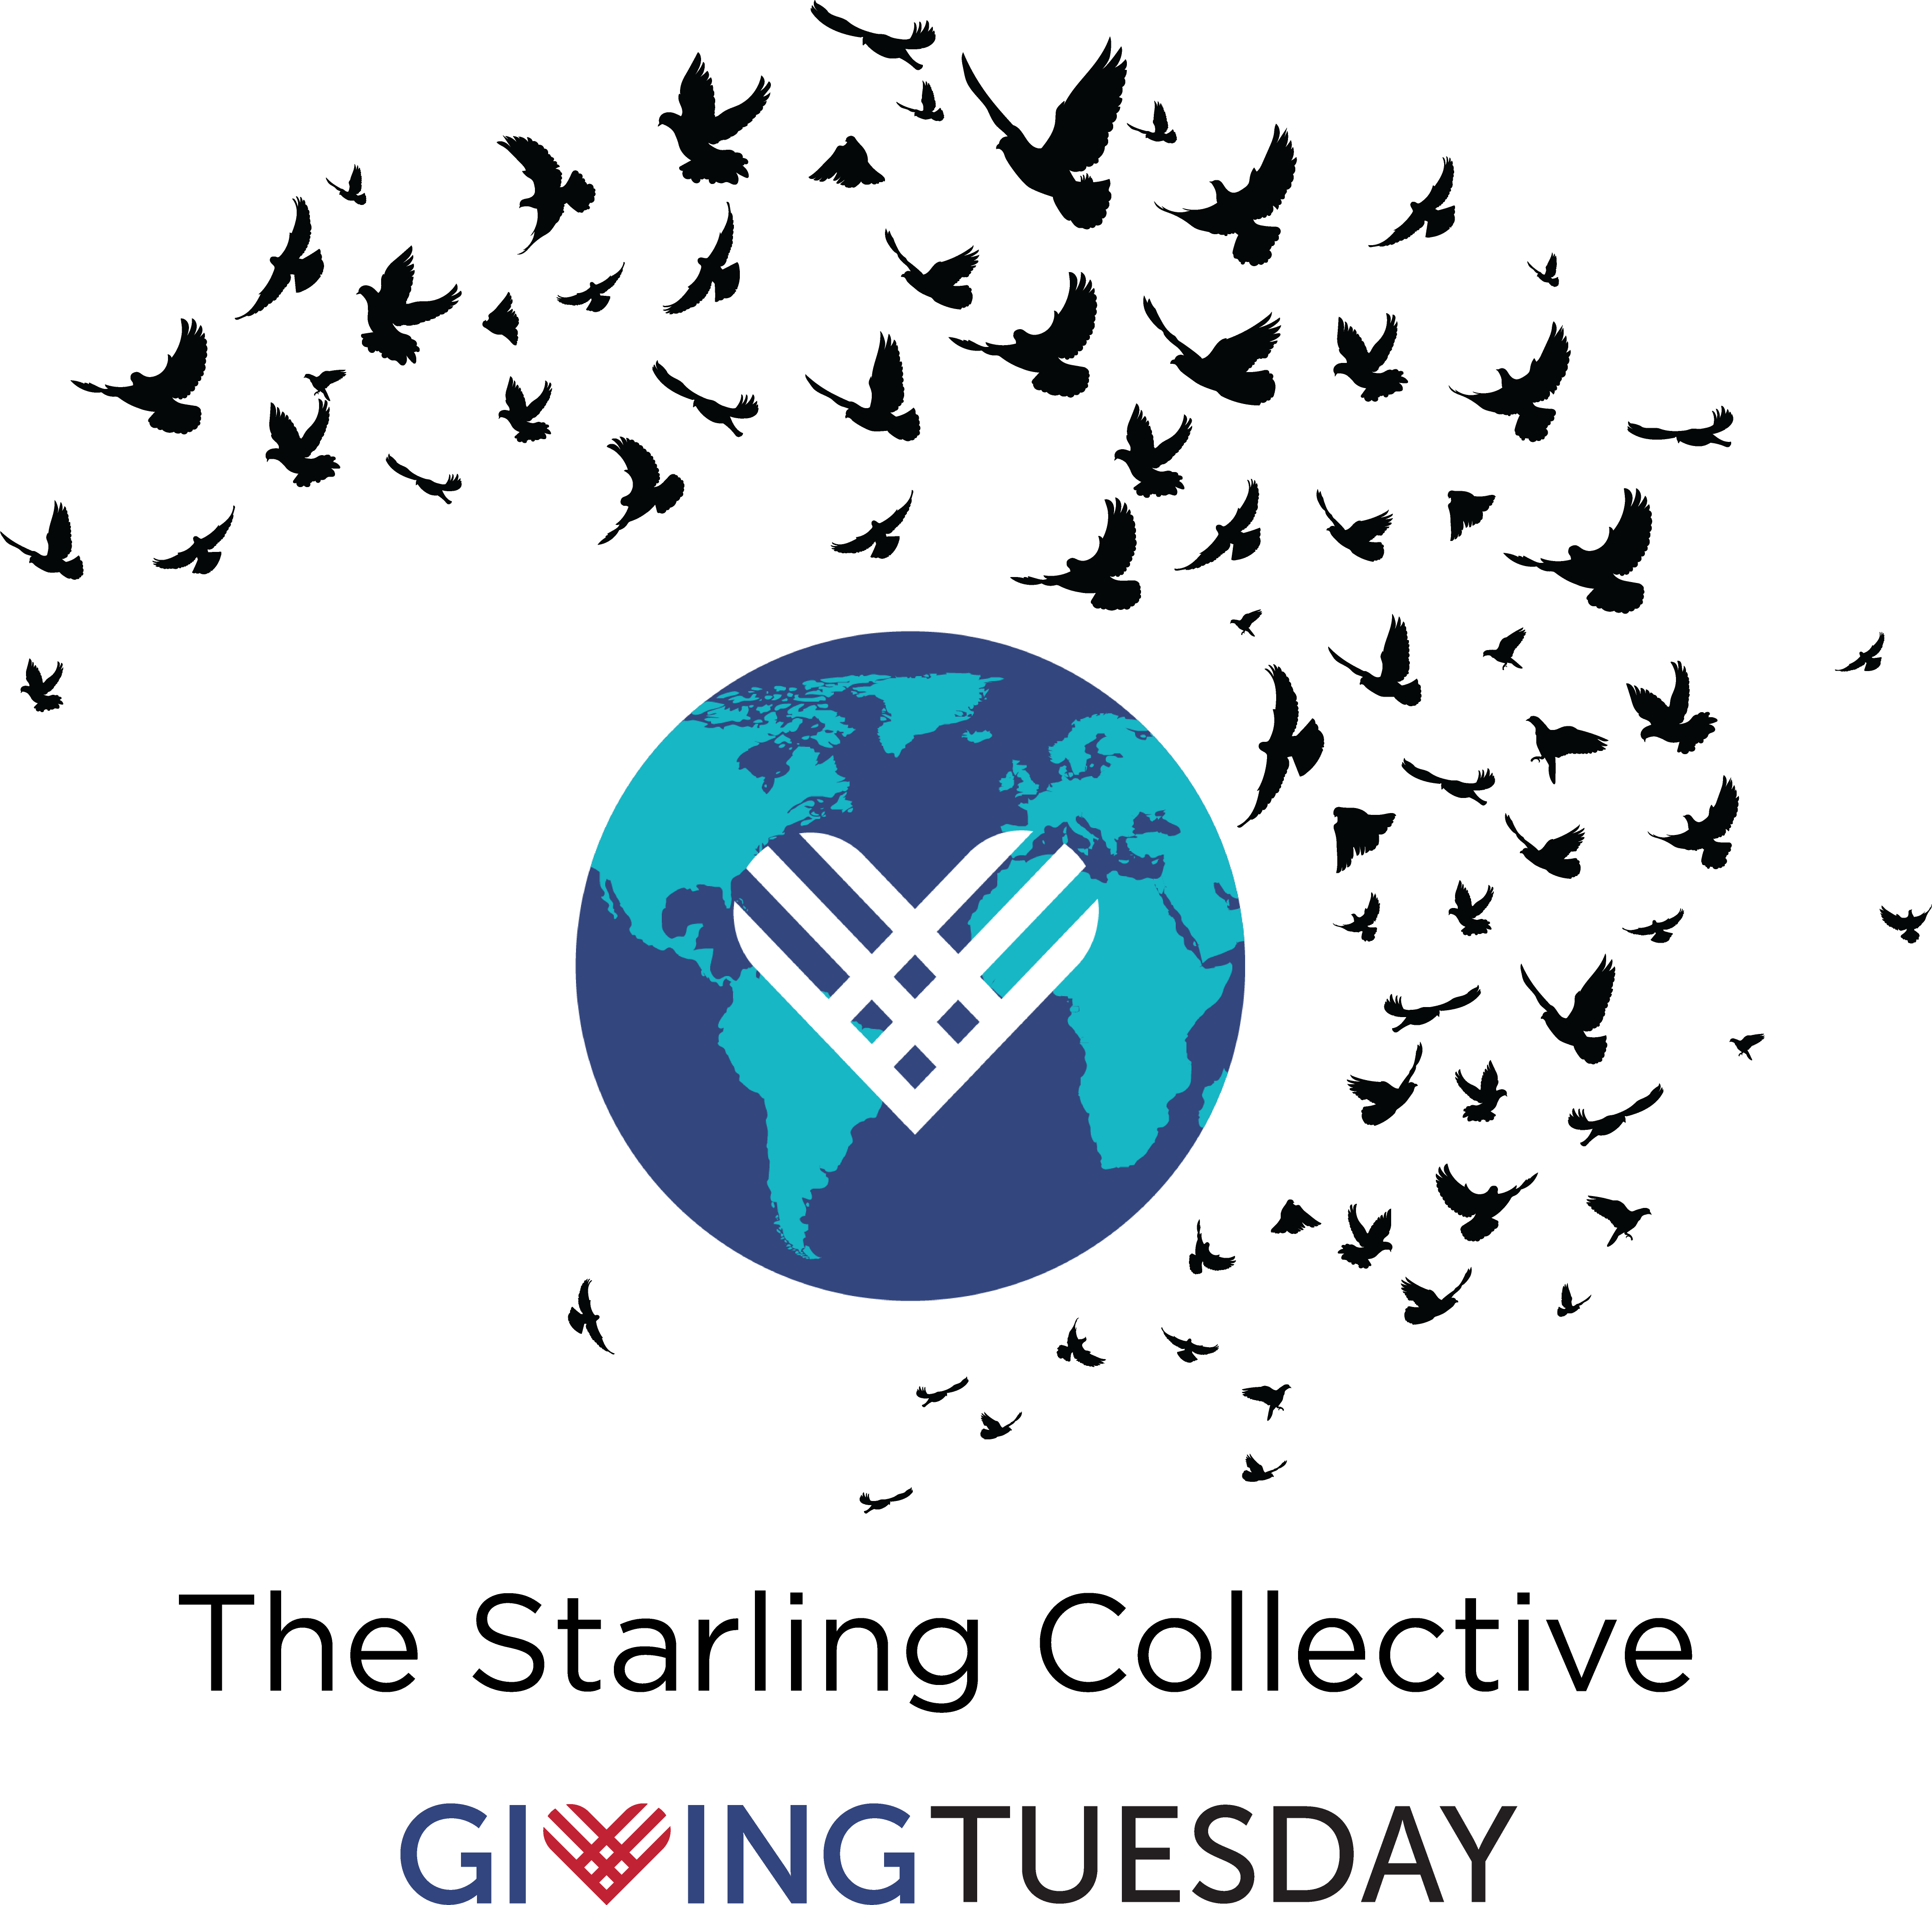 GivingTuesday Opens Applications for Global Fellowship of Grassroots Leaders